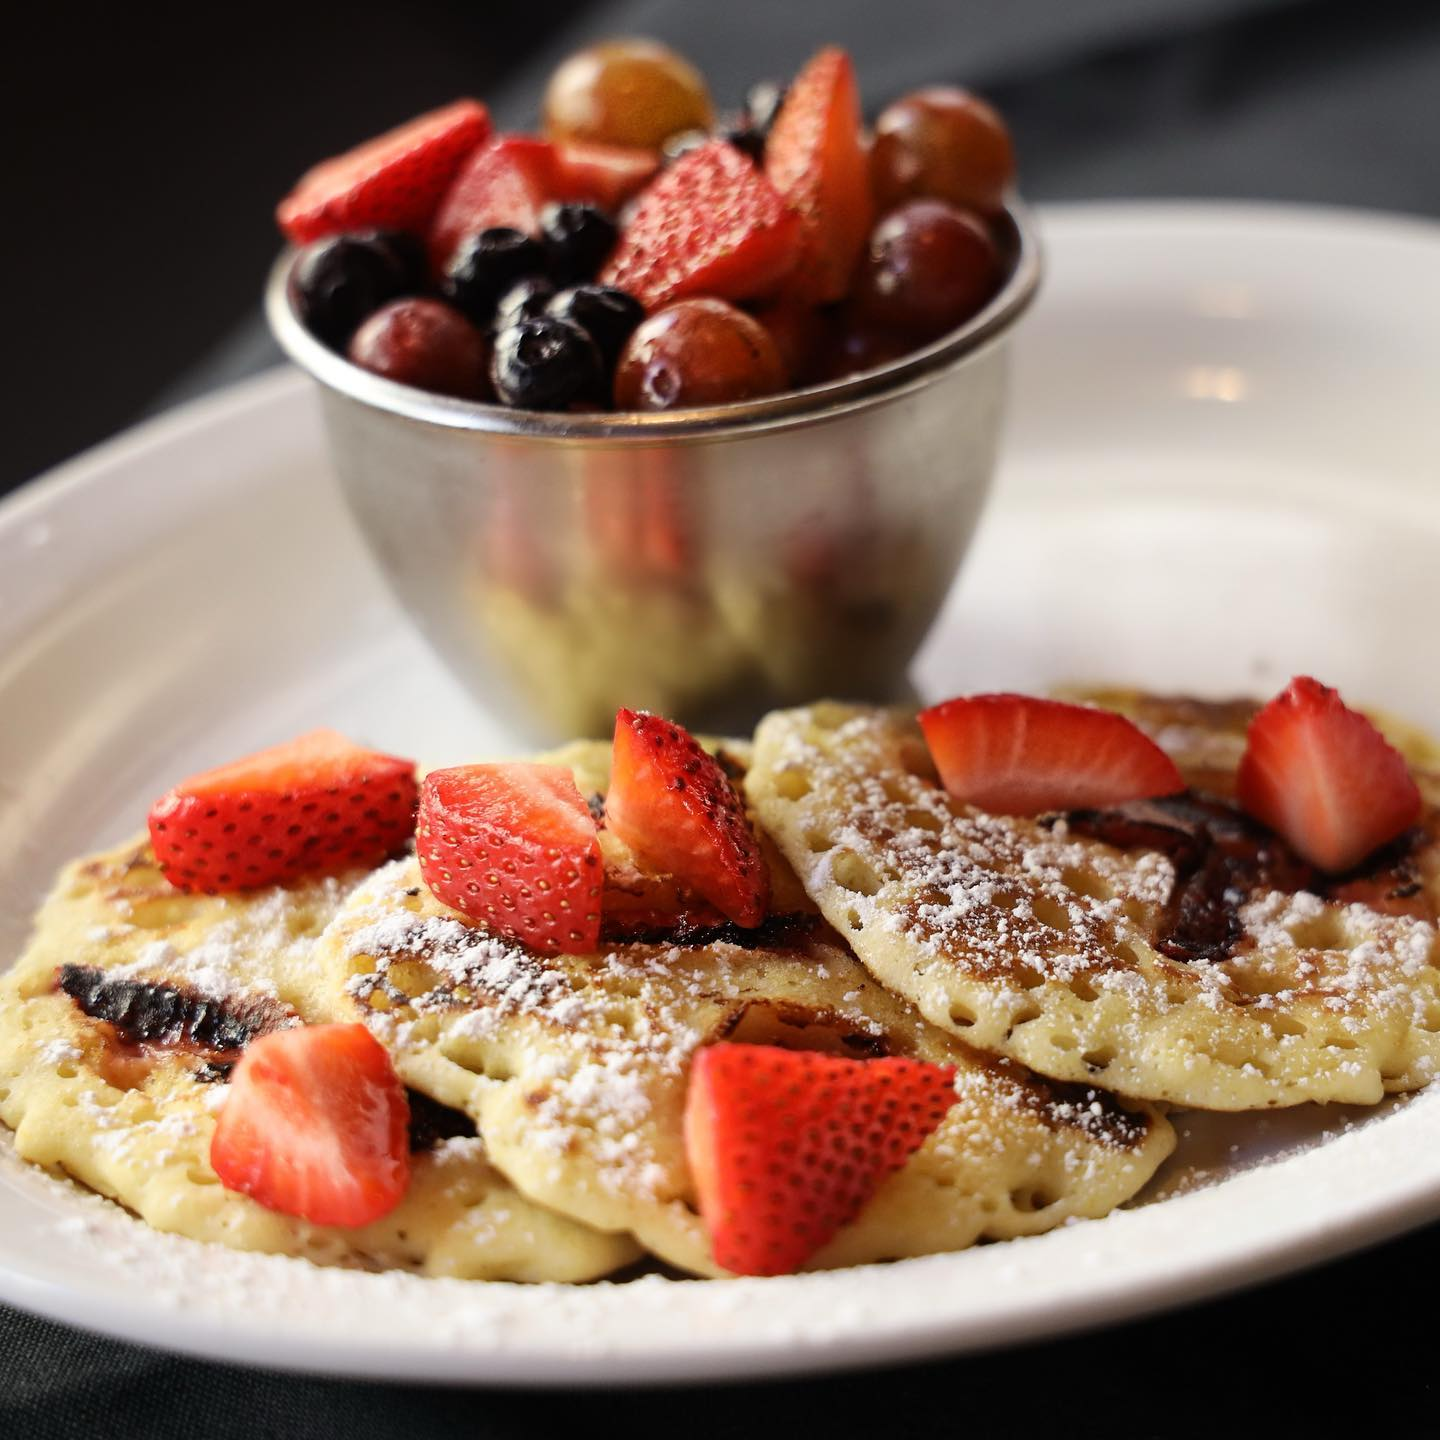 pancakes topped with strawberries and a side of fruit